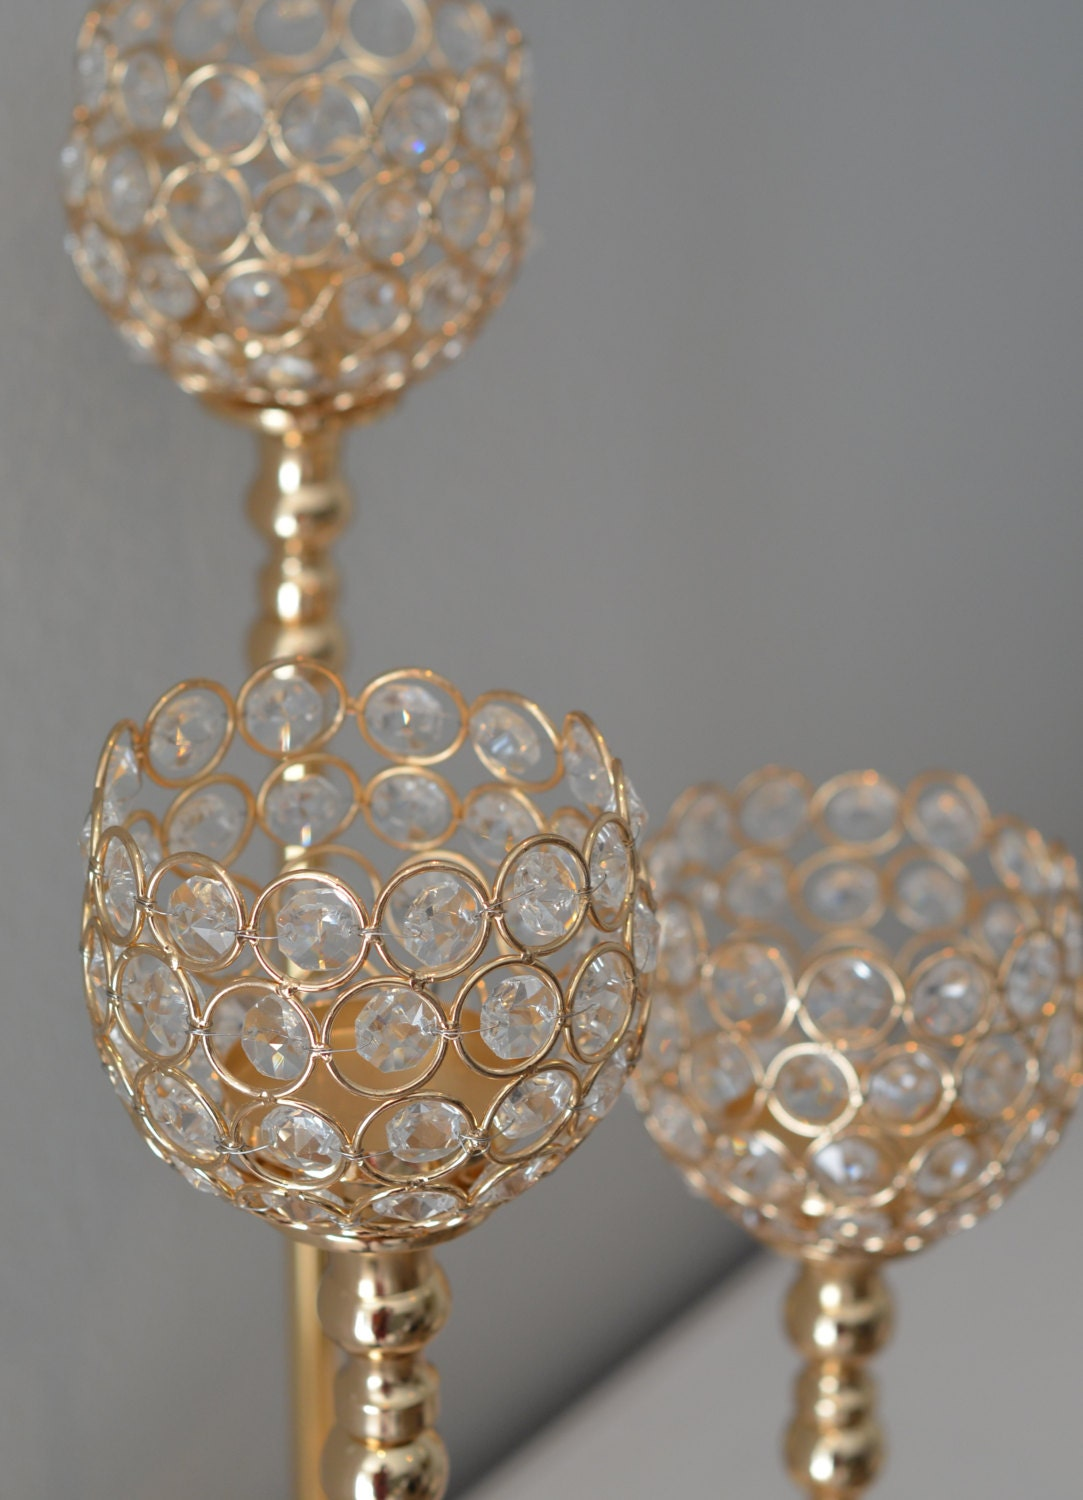 Gold bling candle holder gold rhinestone flower ball stand or for 7p decoration